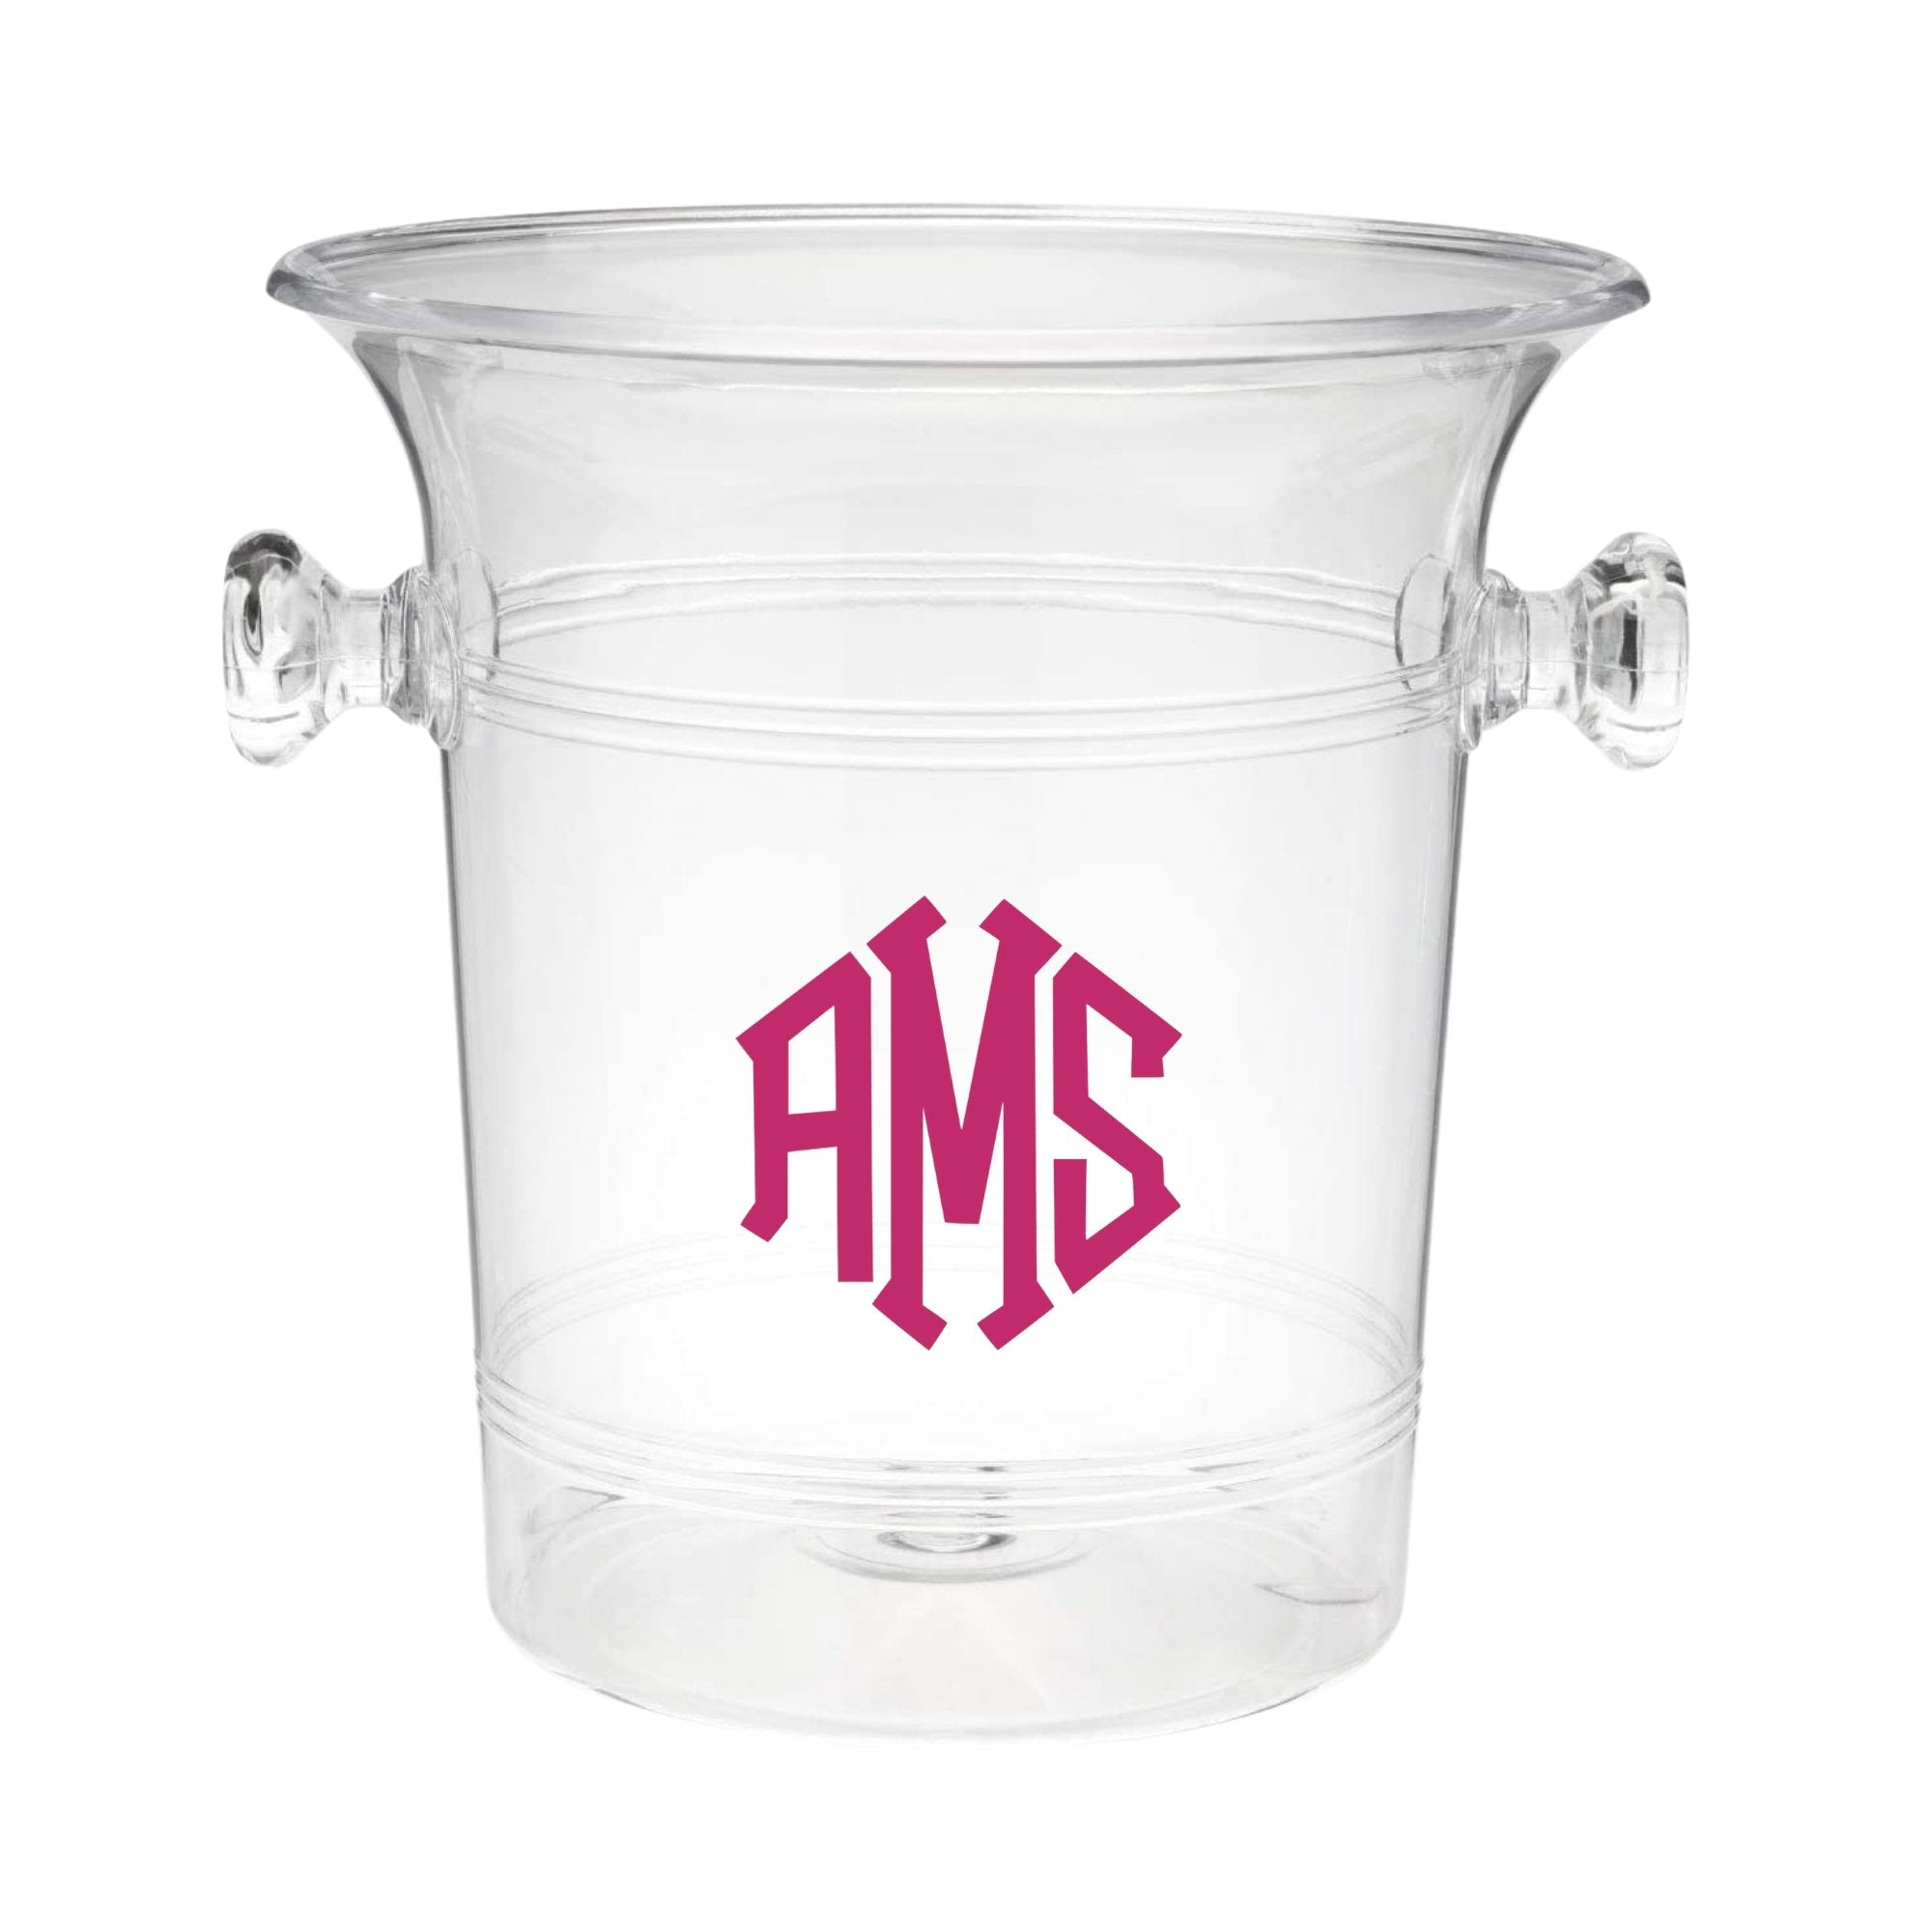 Diamond Monogram Ice Bucket - Sprinkled With Pink #bachelorette #custom #gifts